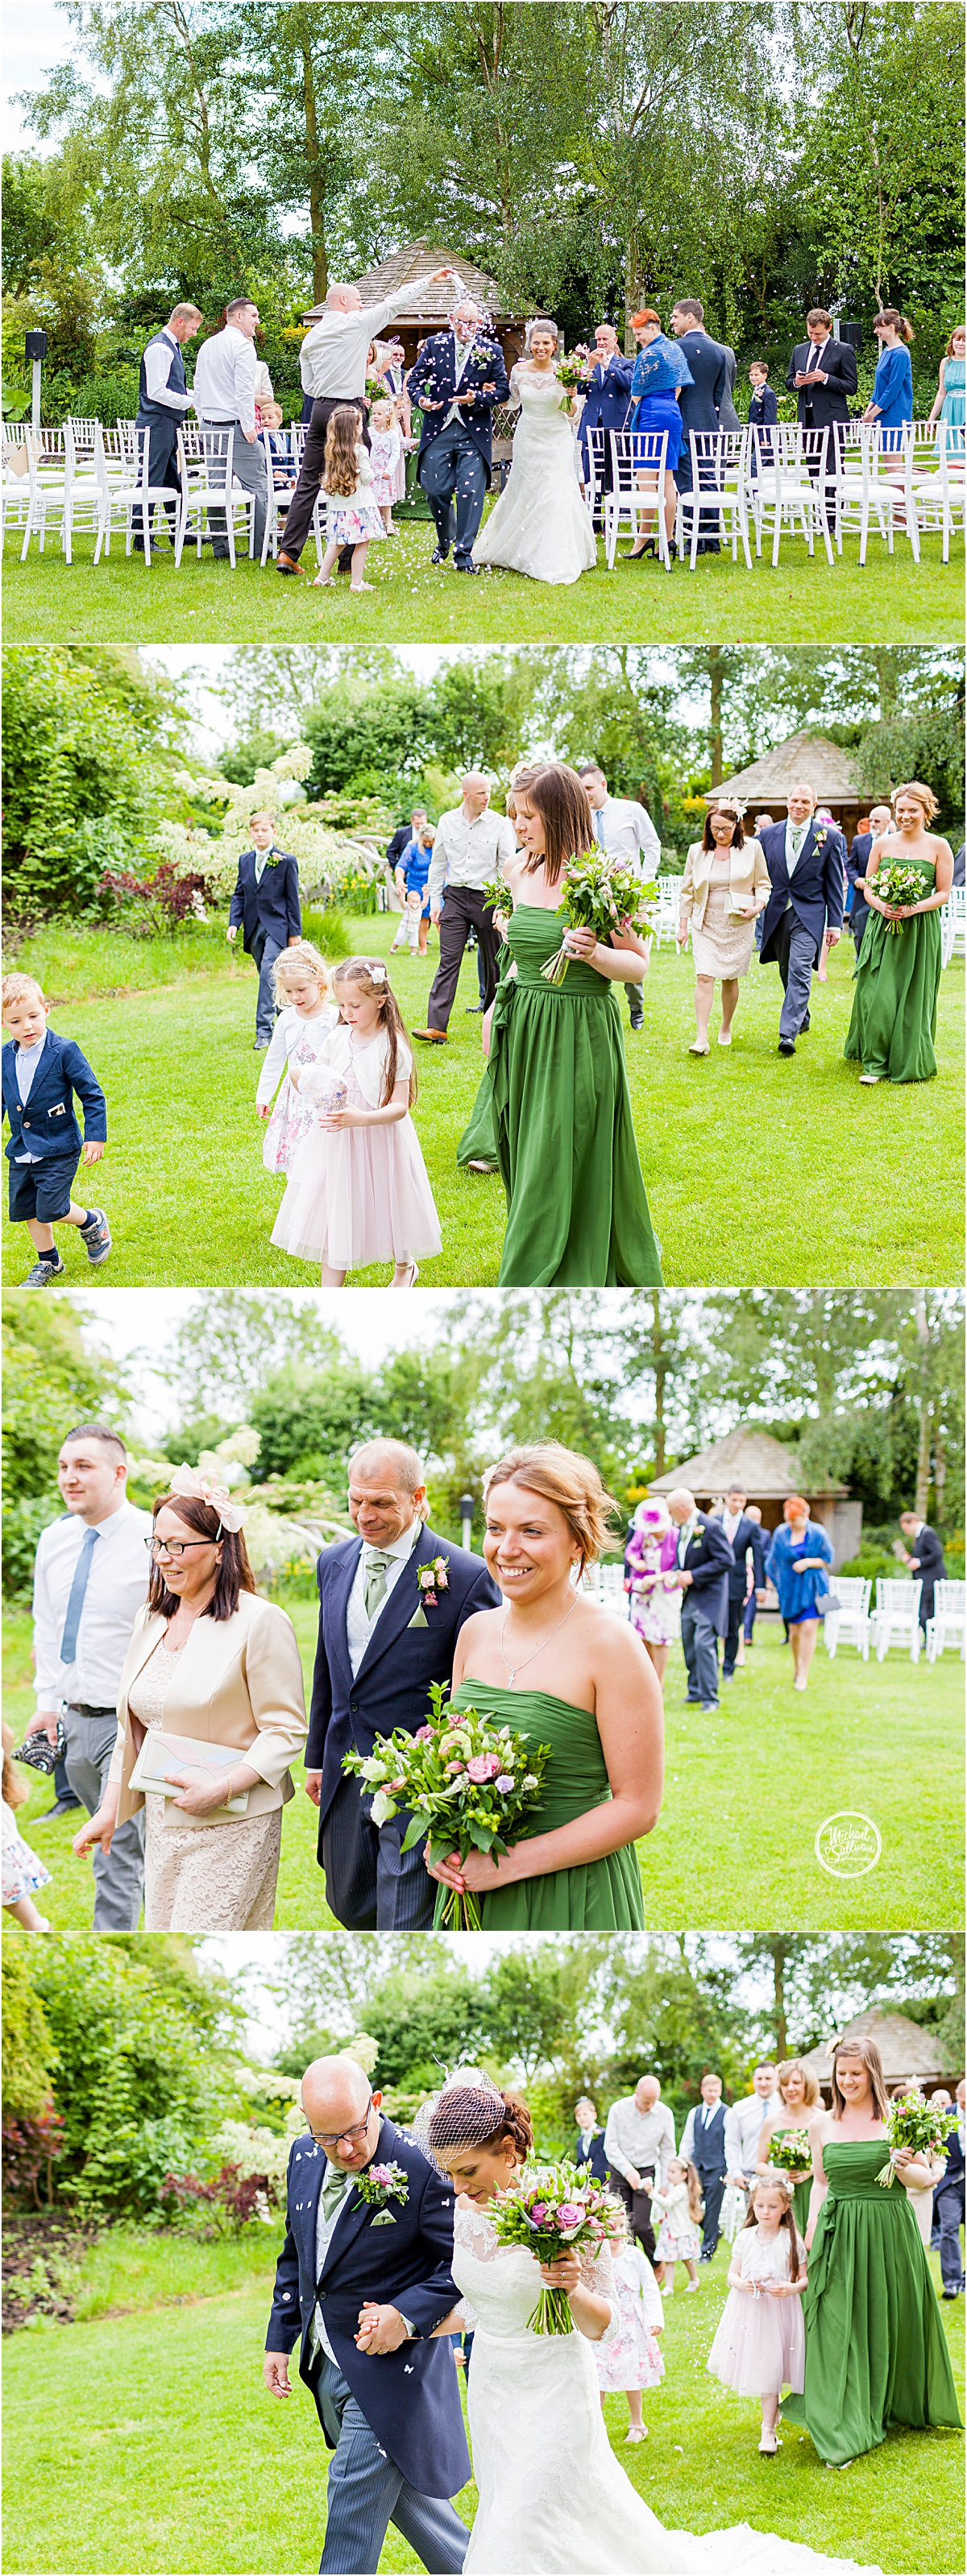 Cambridgeshire South Farm Wedding Photographer